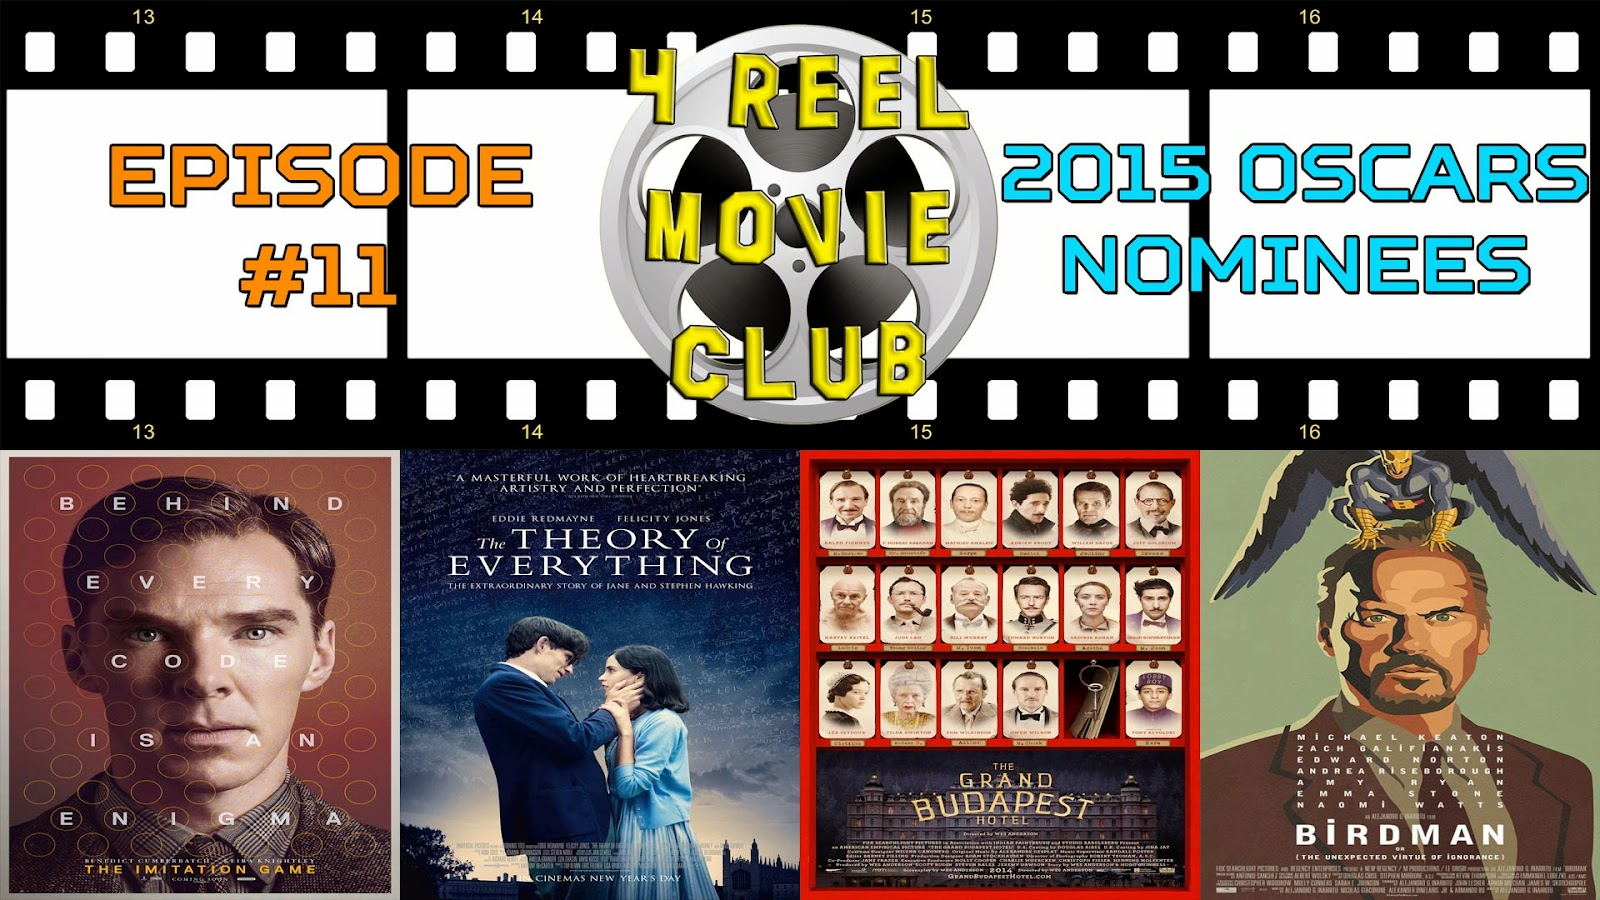 The Imitation Game, The Theory of Everything, The Grand Budapest Hotel, Birdman